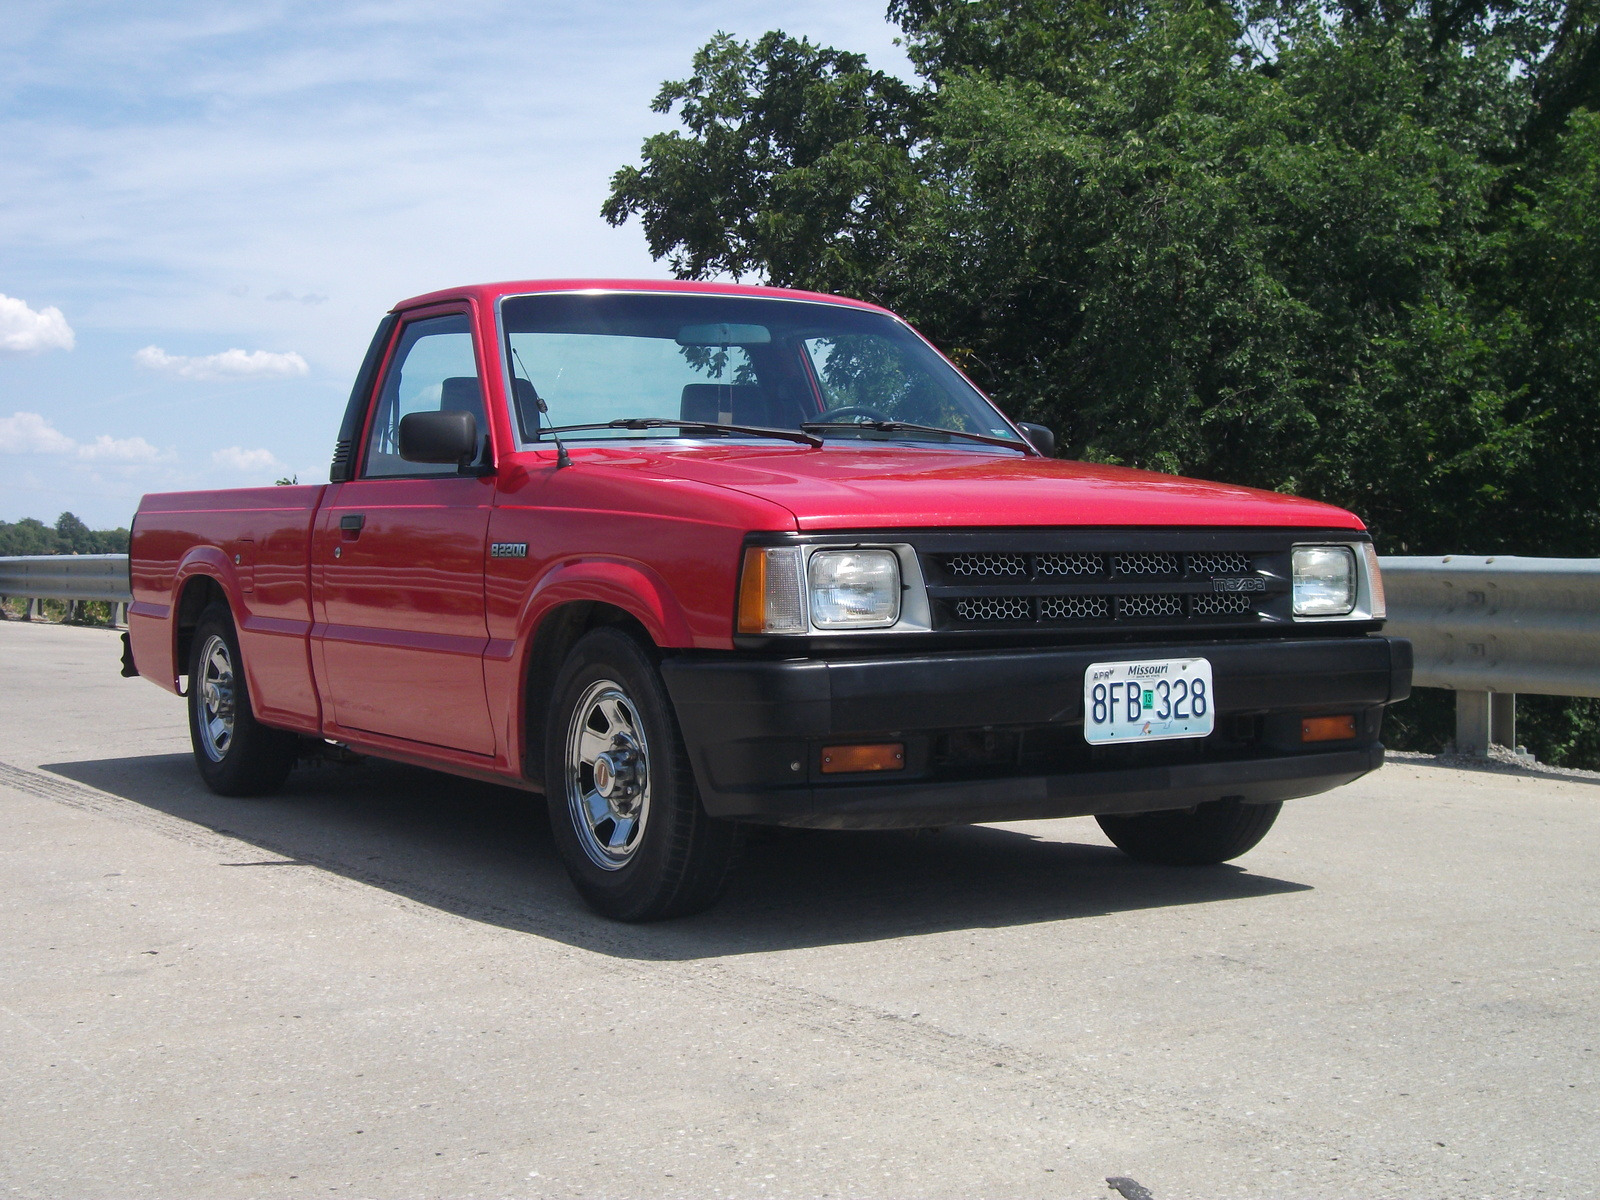 1993 mazda b series pickup information and photos zombiedrive. Black Bedroom Furniture Sets. Home Design Ideas